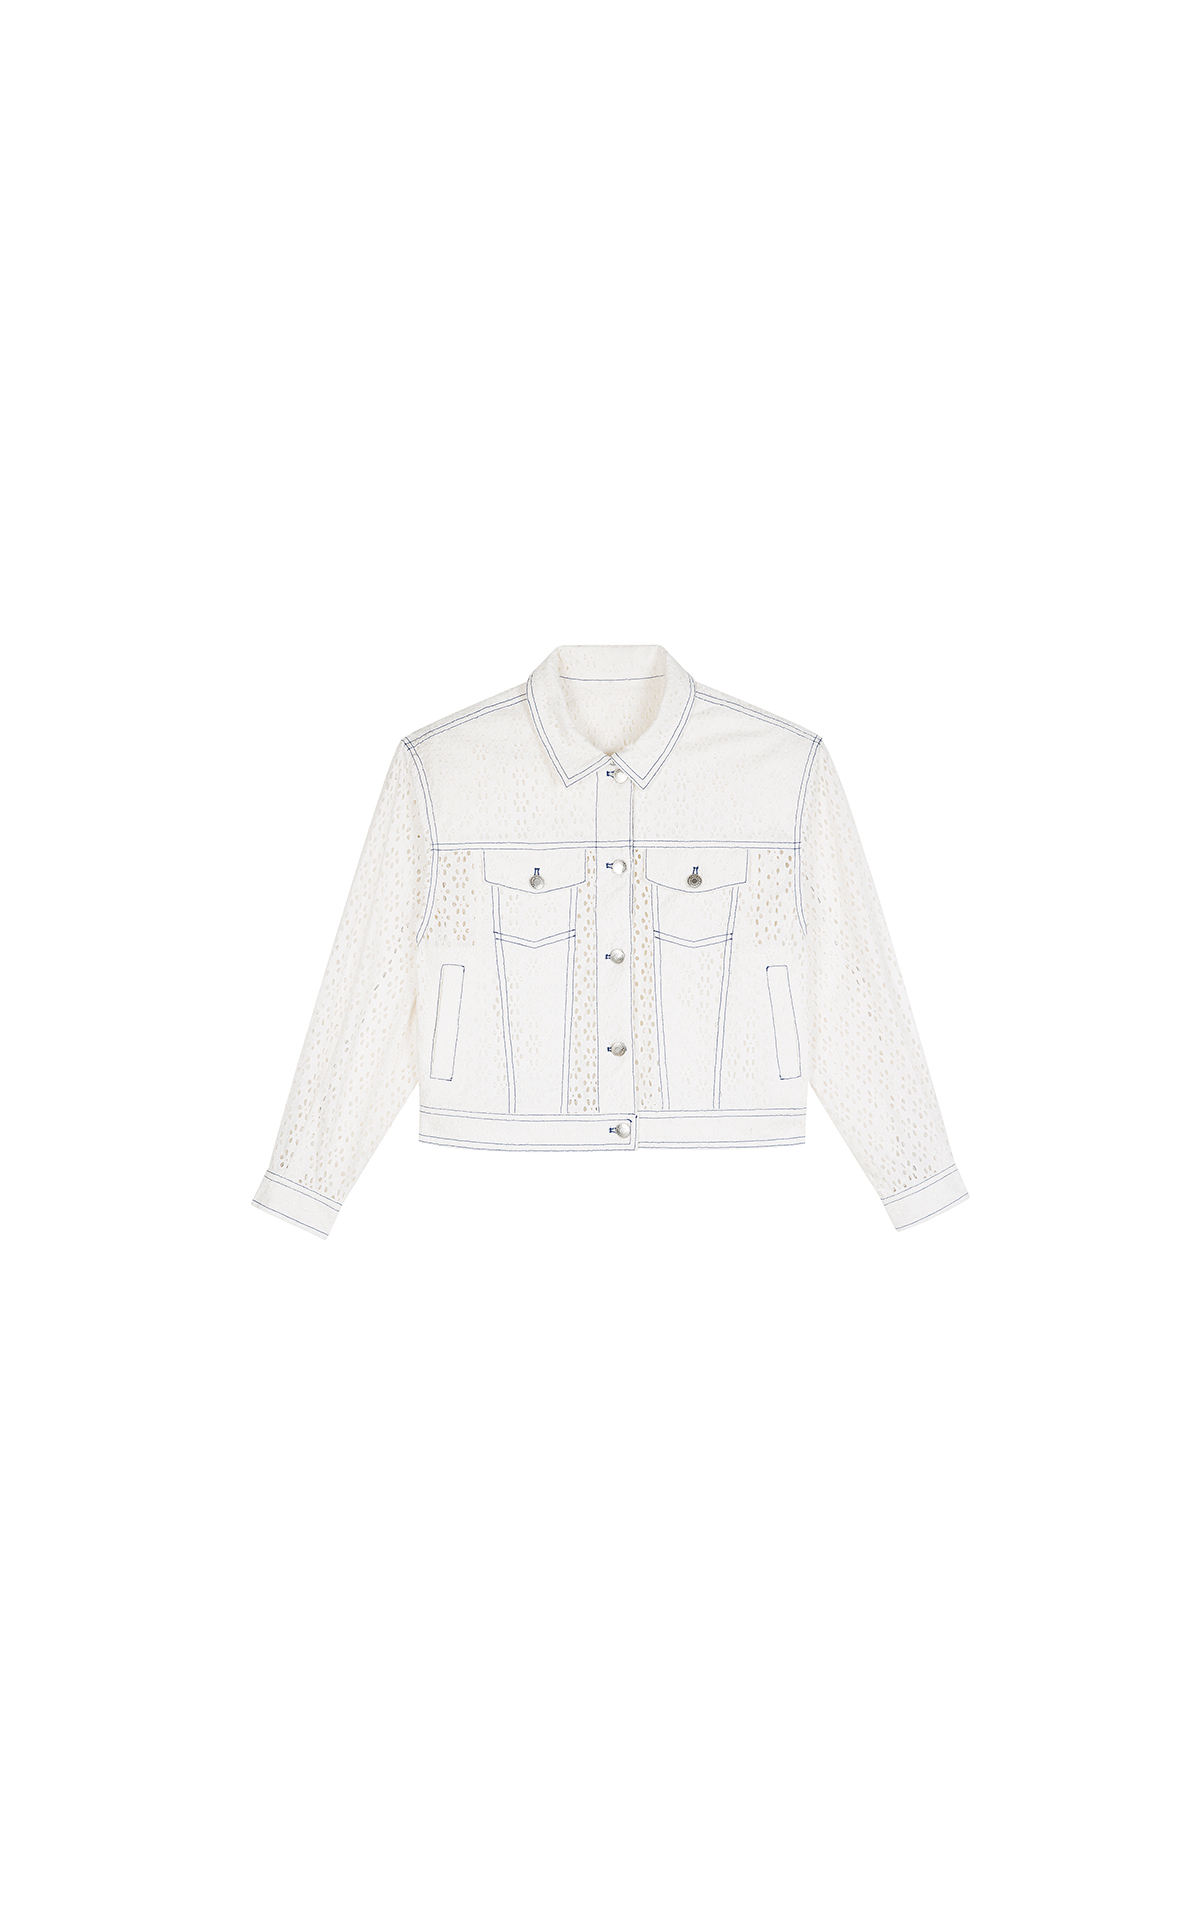 Claudie Pierlot white lace jacket at the bicester village shopping collection